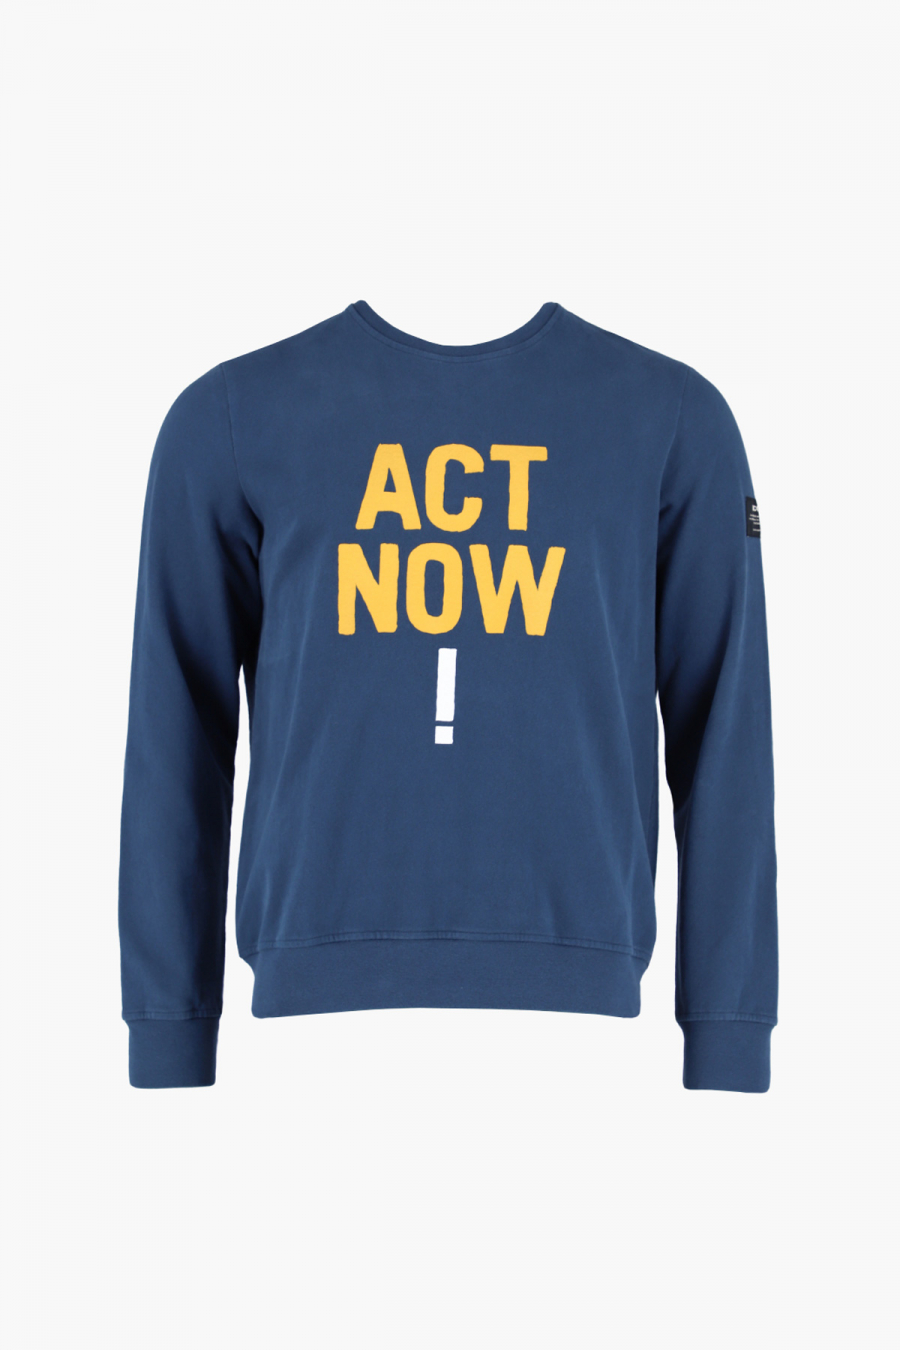 ALTAMIRA ACT NOW SWEATSHIRT MAN